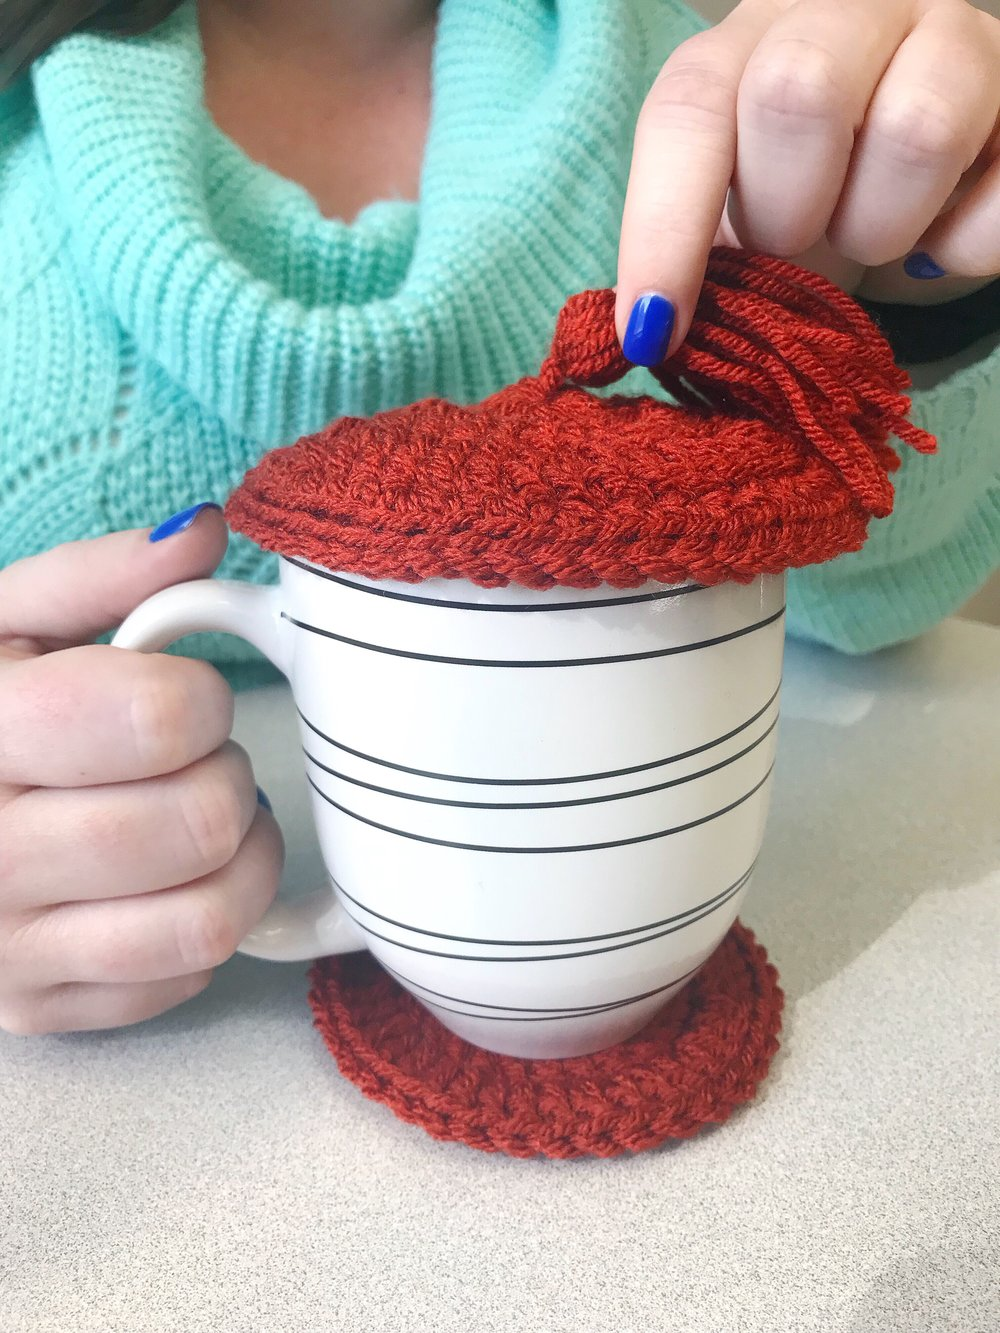 How to Use Handmade Coasters & Cup Lids| Hate how your coffee or hot tea gets cold too quickly? Use handmade coaster and cup lid to keep your drink warm and cozy! www.TheUrbanCountess.com